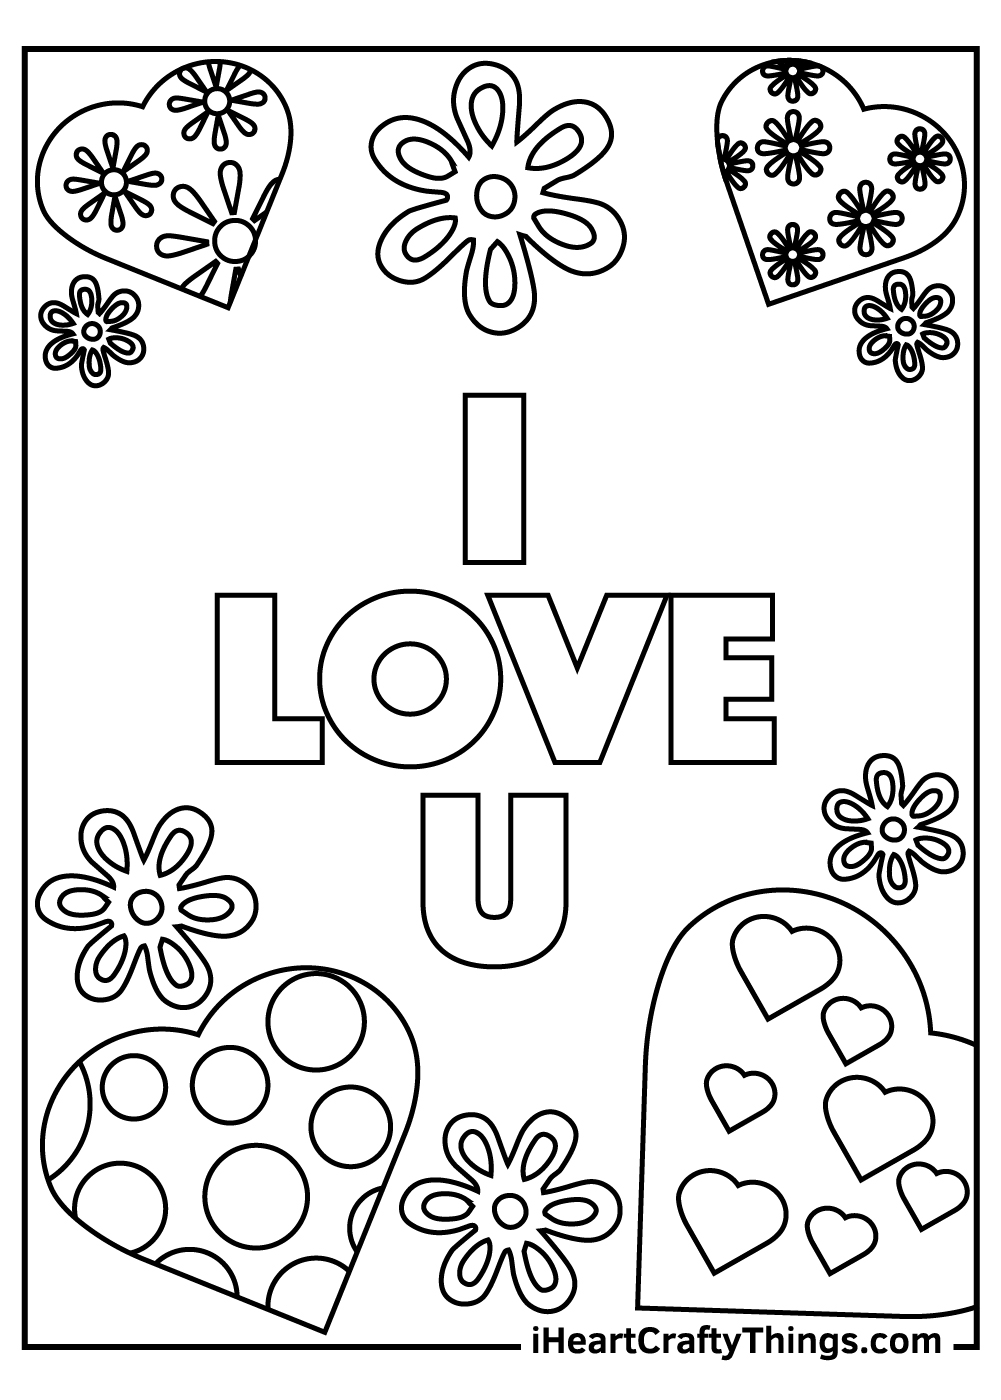 I Love You dad coloring pages free printable